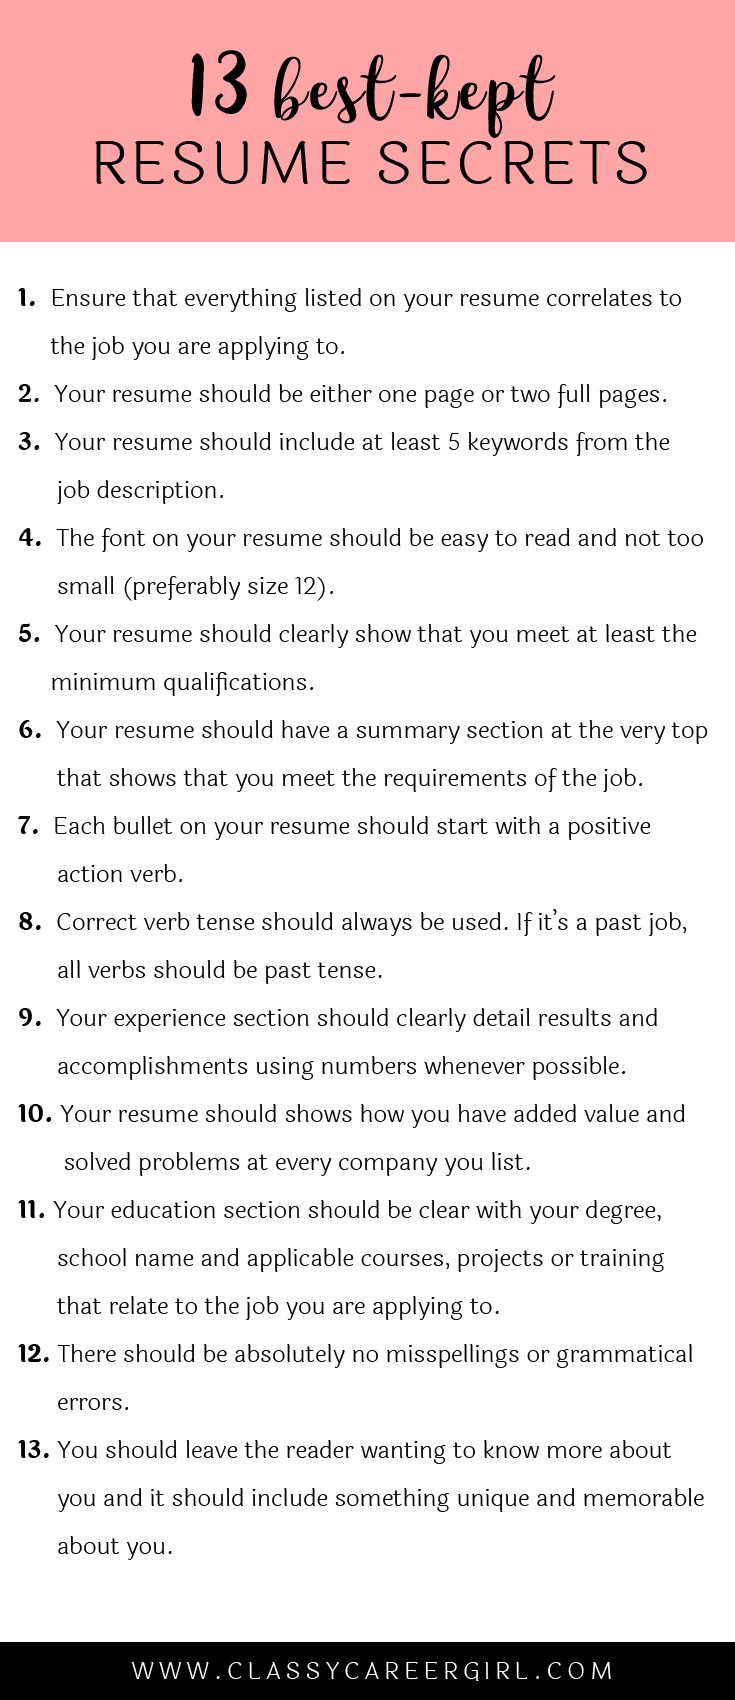 Picnictoimpeachus  Stunning  Ideas About Resume On Pinterest  Cv Format Resume Cv And  With Handsome Some Hiring Managers Will Toss Your Resume Out If You Dont Know These  With Beautiful Downloadable Resume Templates Free Also Paraprofessional Resume Sample In Addition How To Do An Resume And Free Help With Resume As Well As Free Printable Fill In The Blank Resume Templates Additionally Executive Administrative Assistant Resume Sample From Pinterestcom With Picnictoimpeachus  Handsome  Ideas About Resume On Pinterest  Cv Format Resume Cv And  With Beautiful Some Hiring Managers Will Toss Your Resume Out If You Dont Know These  And Stunning Downloadable Resume Templates Free Also Paraprofessional Resume Sample In Addition How To Do An Resume From Pinterestcom